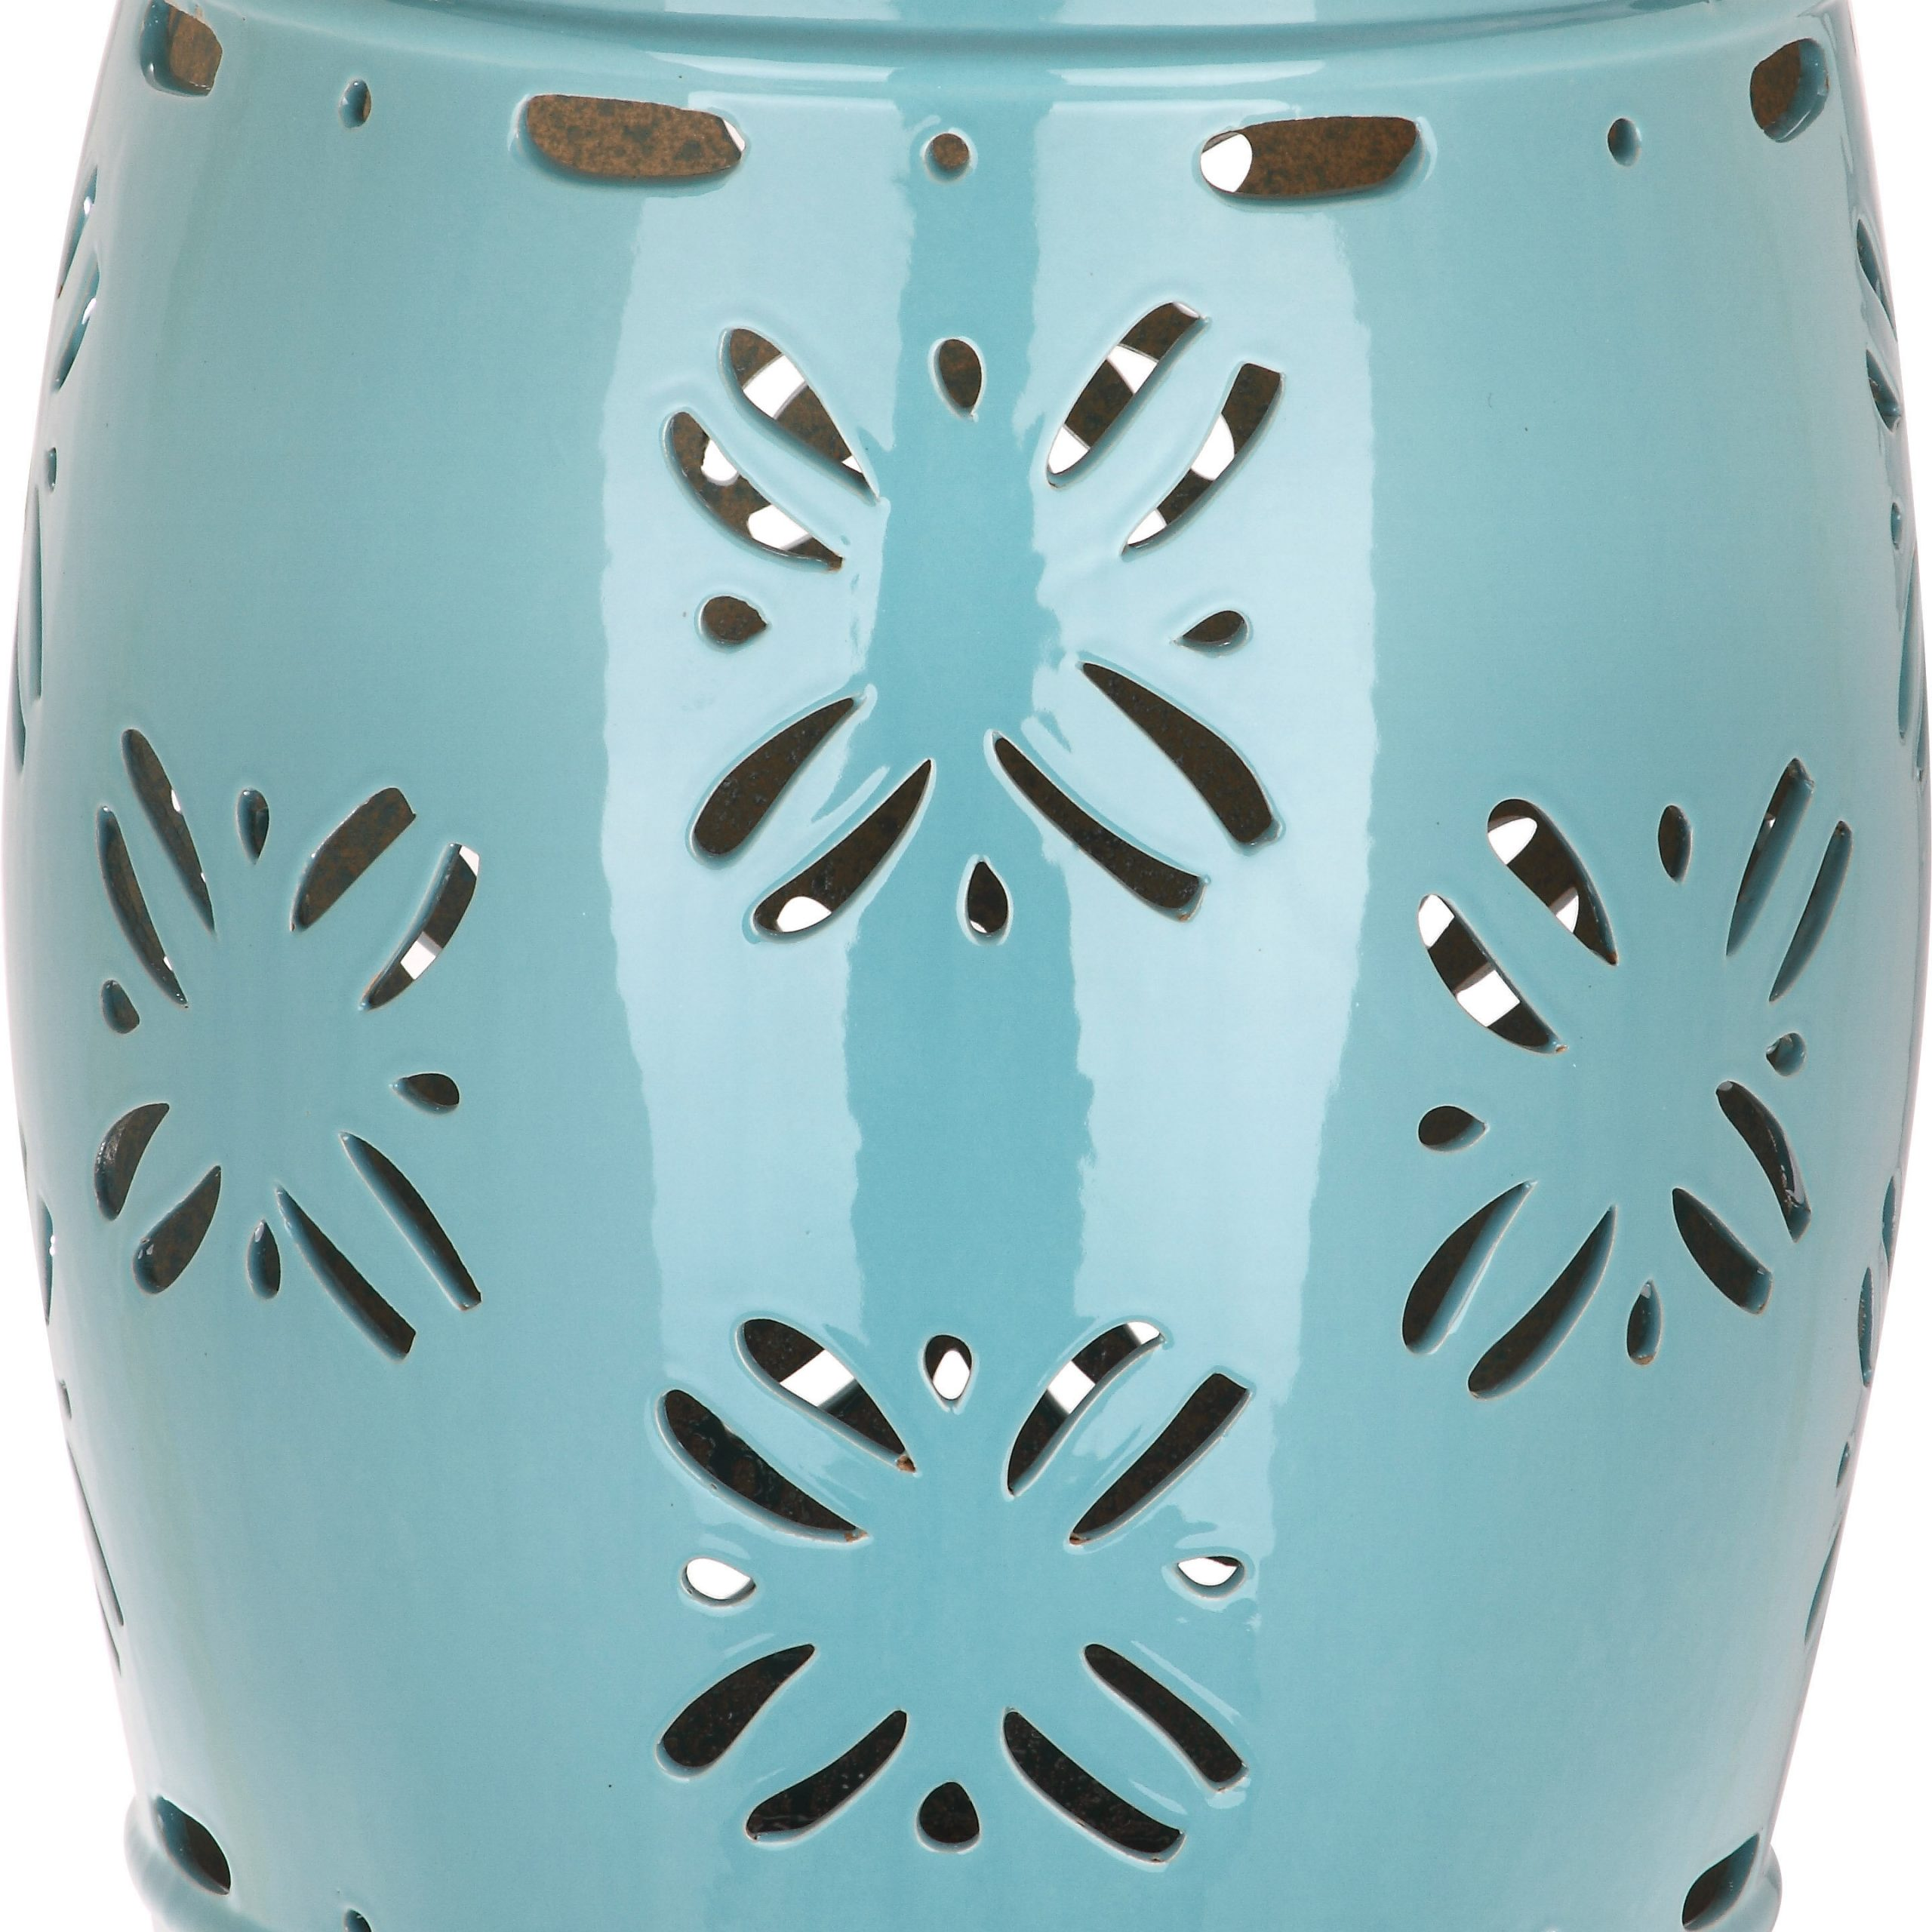 Ceramic Garden Accent Stools You'Ll Love In 2020 | Wayfair In Bonville Ceramic Garden Stools (View 7 of 25)